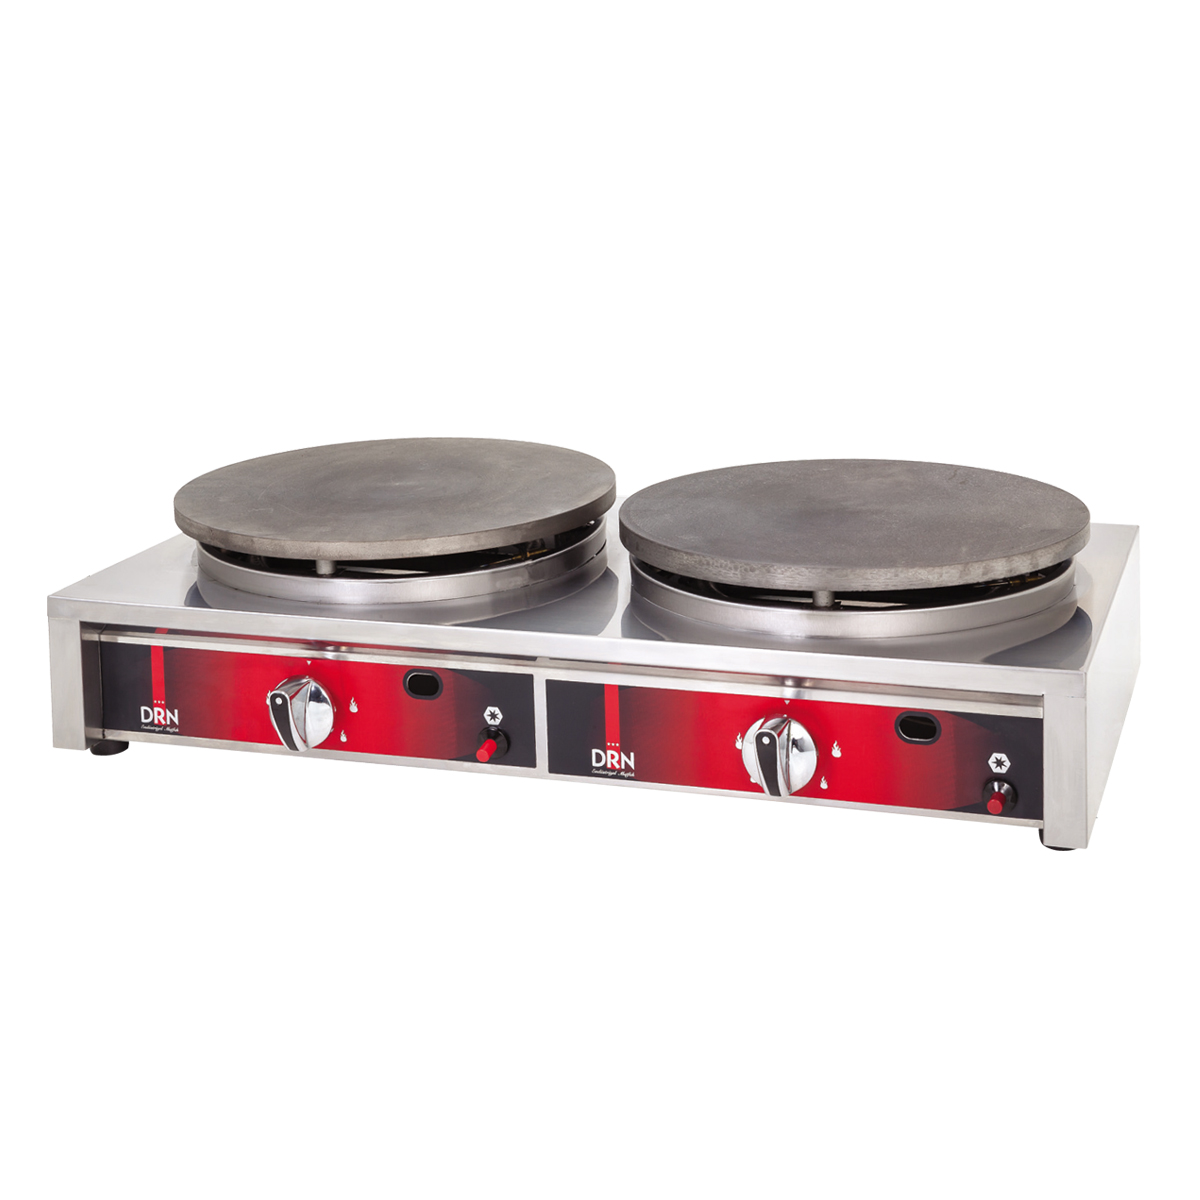 Crepe Maker - Square Case - Double - Electric